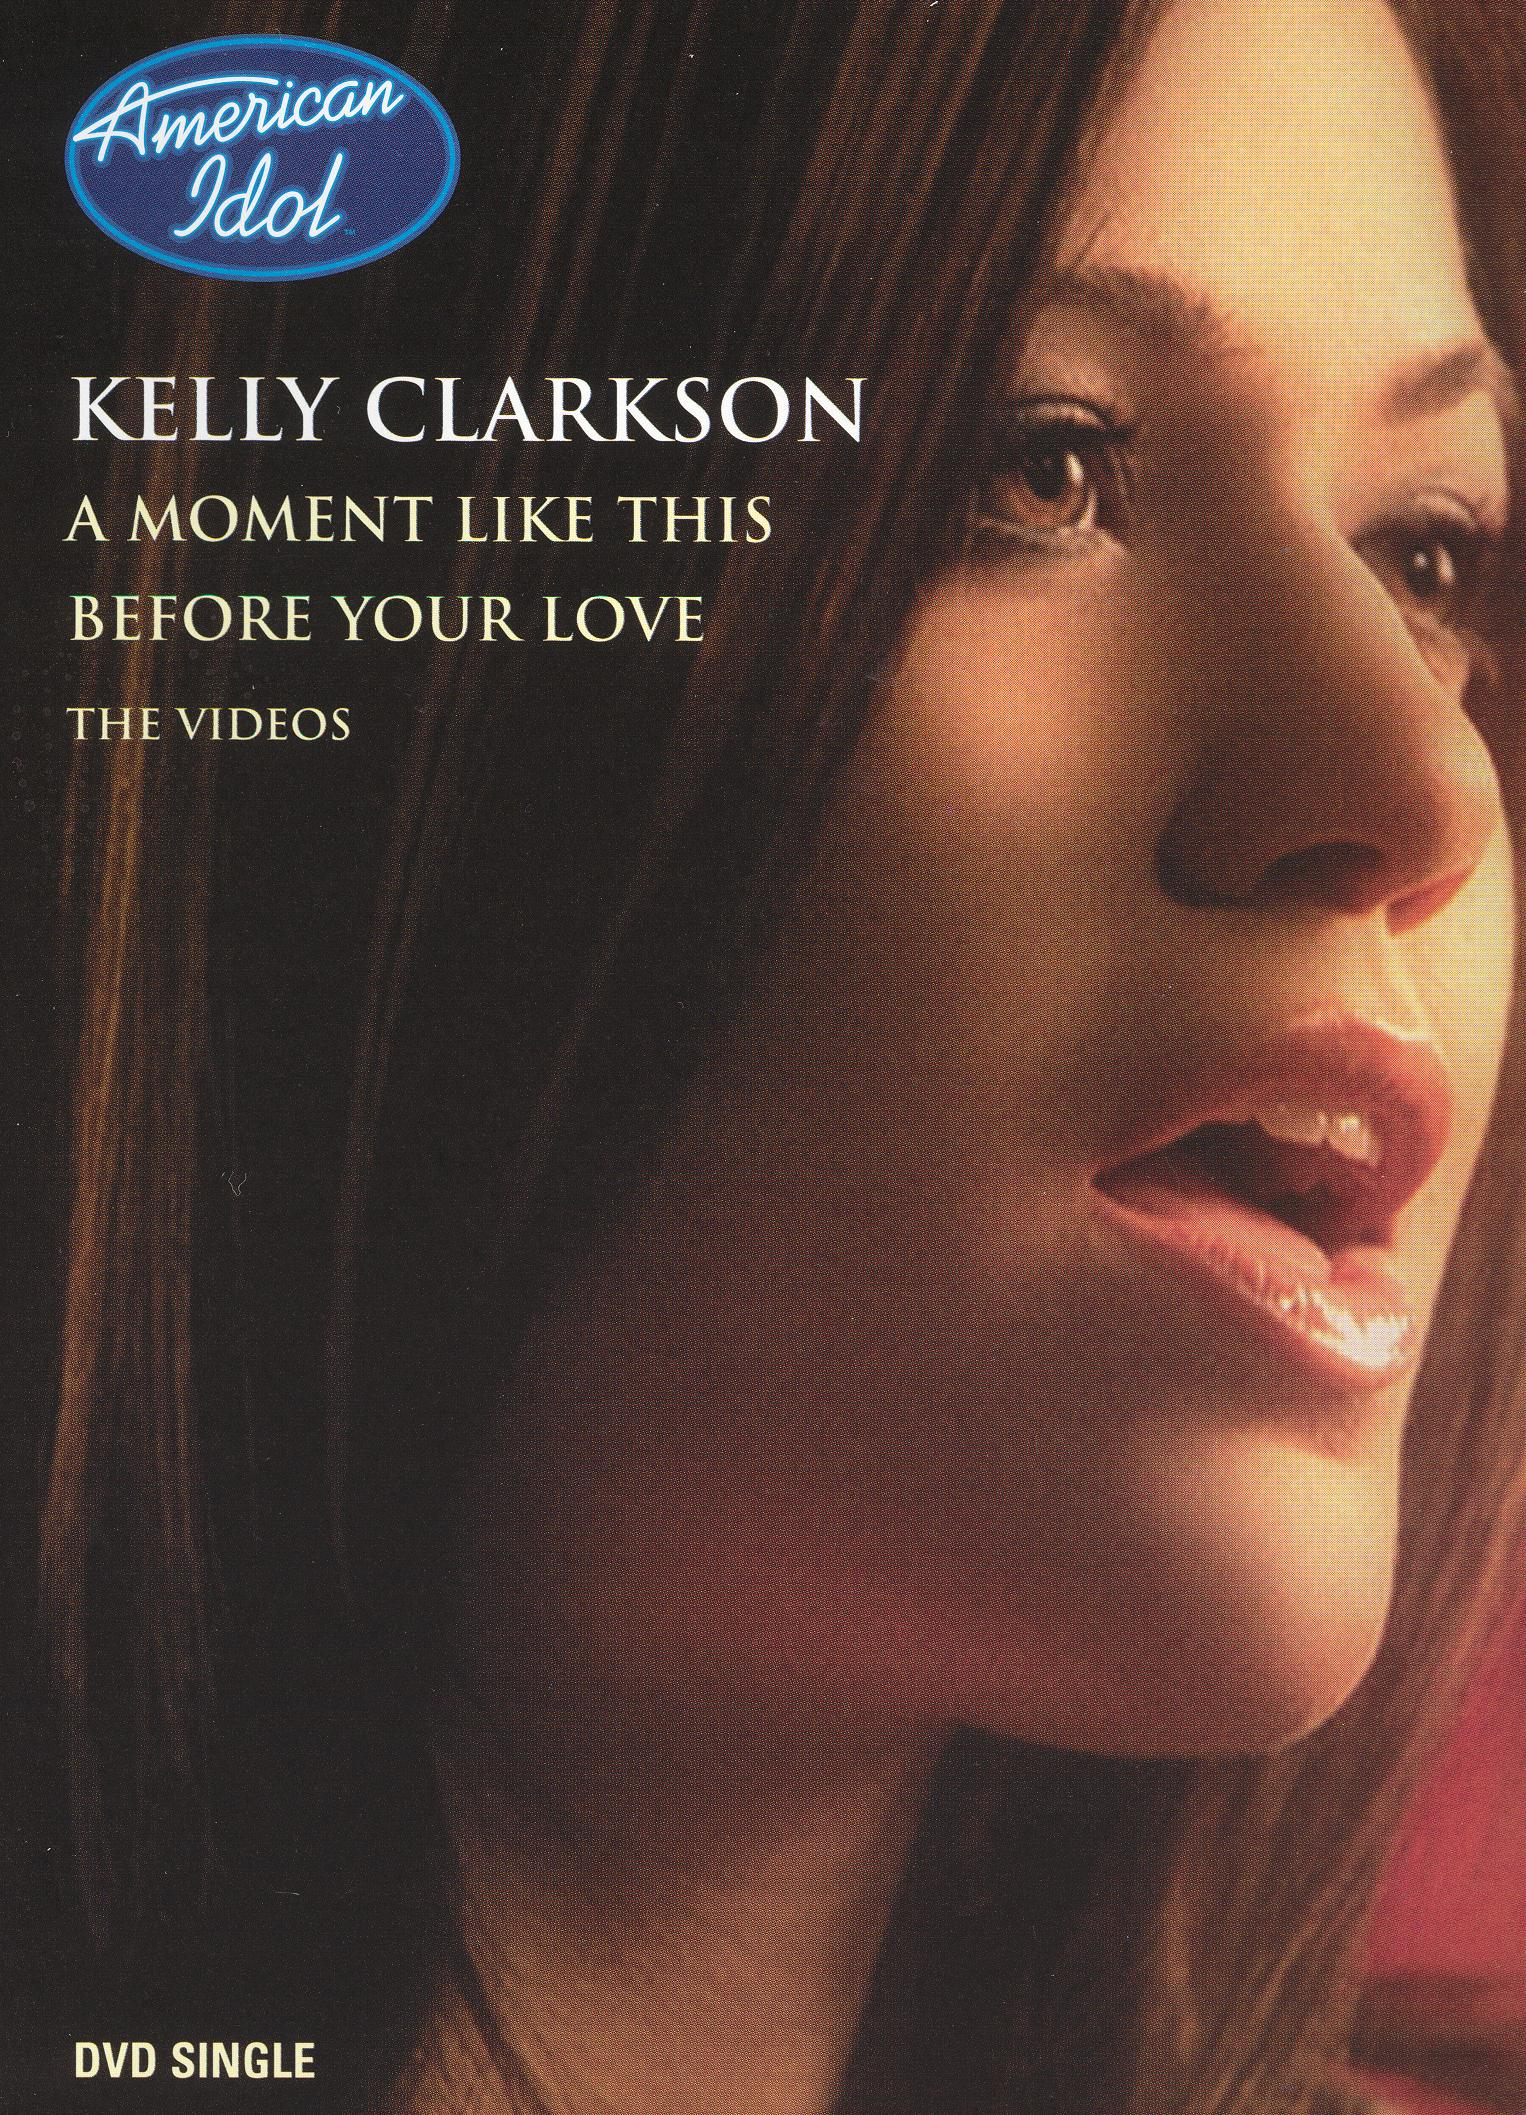 Kelly Clarkson: Before Your Love/A Moment Like This [DVD Single]